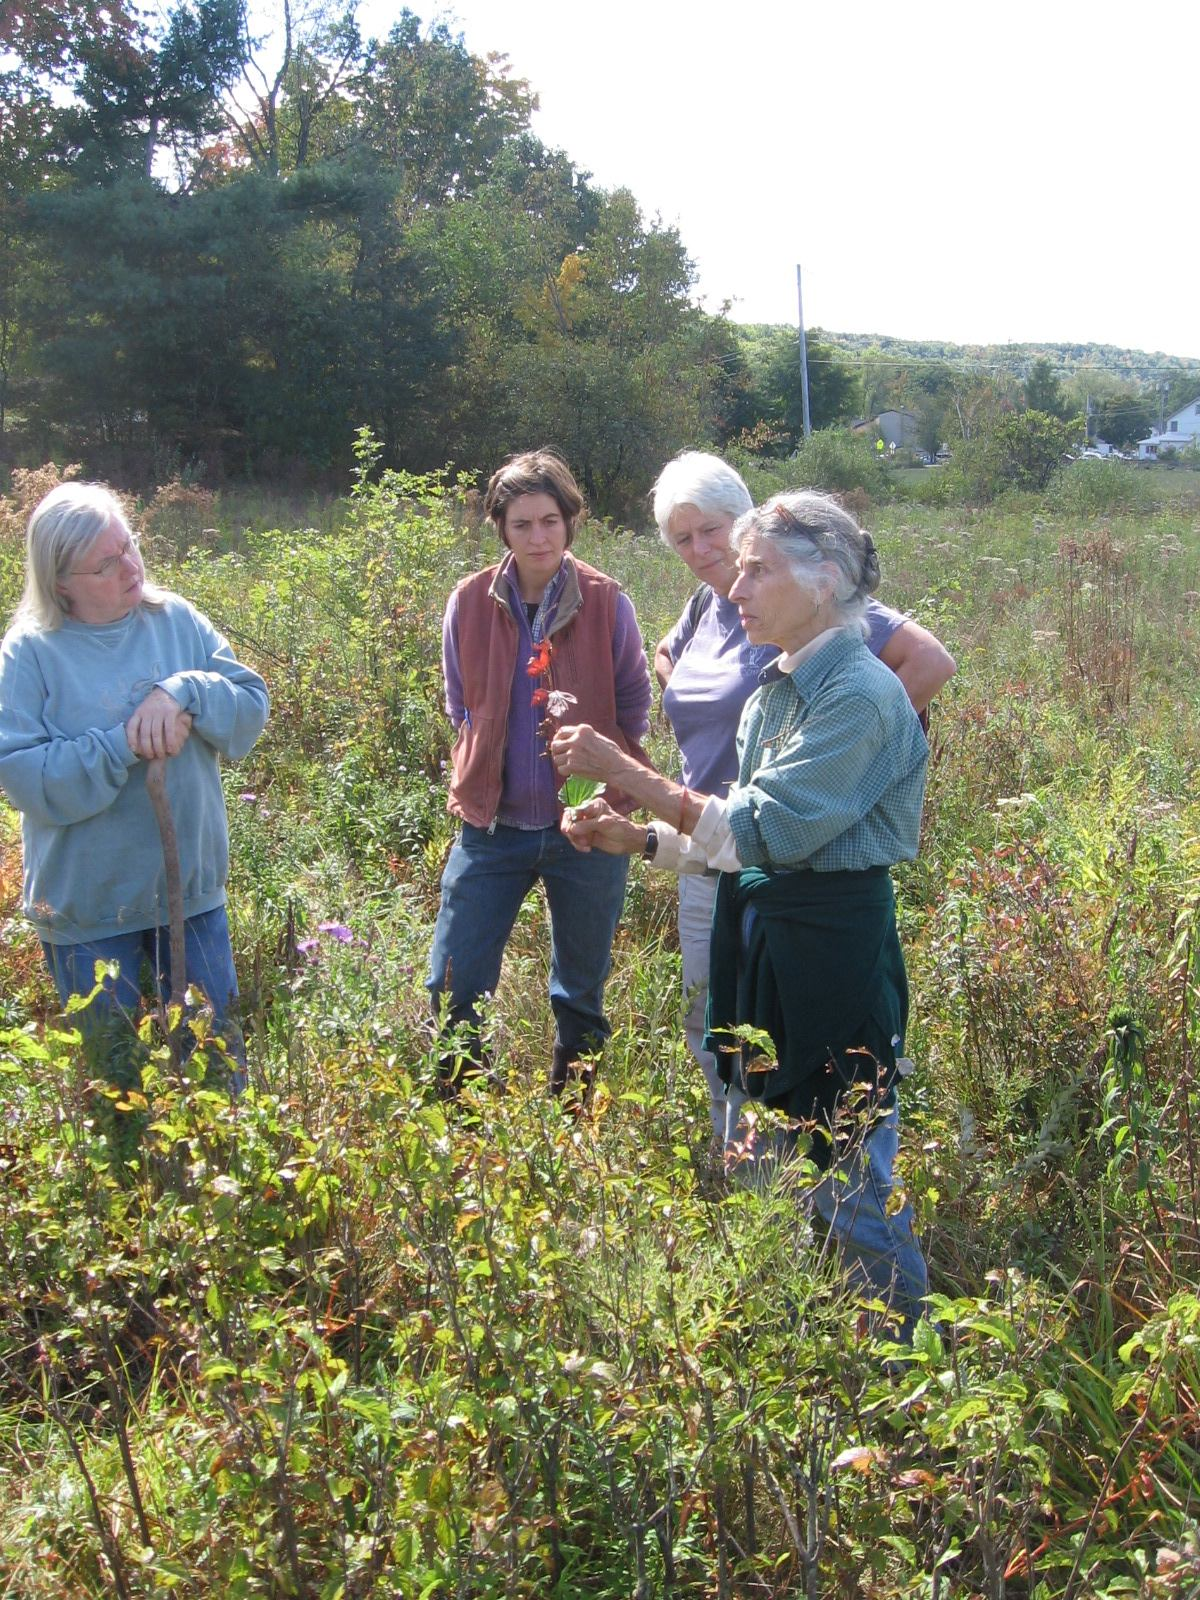 Collecting wild seeds from native plants